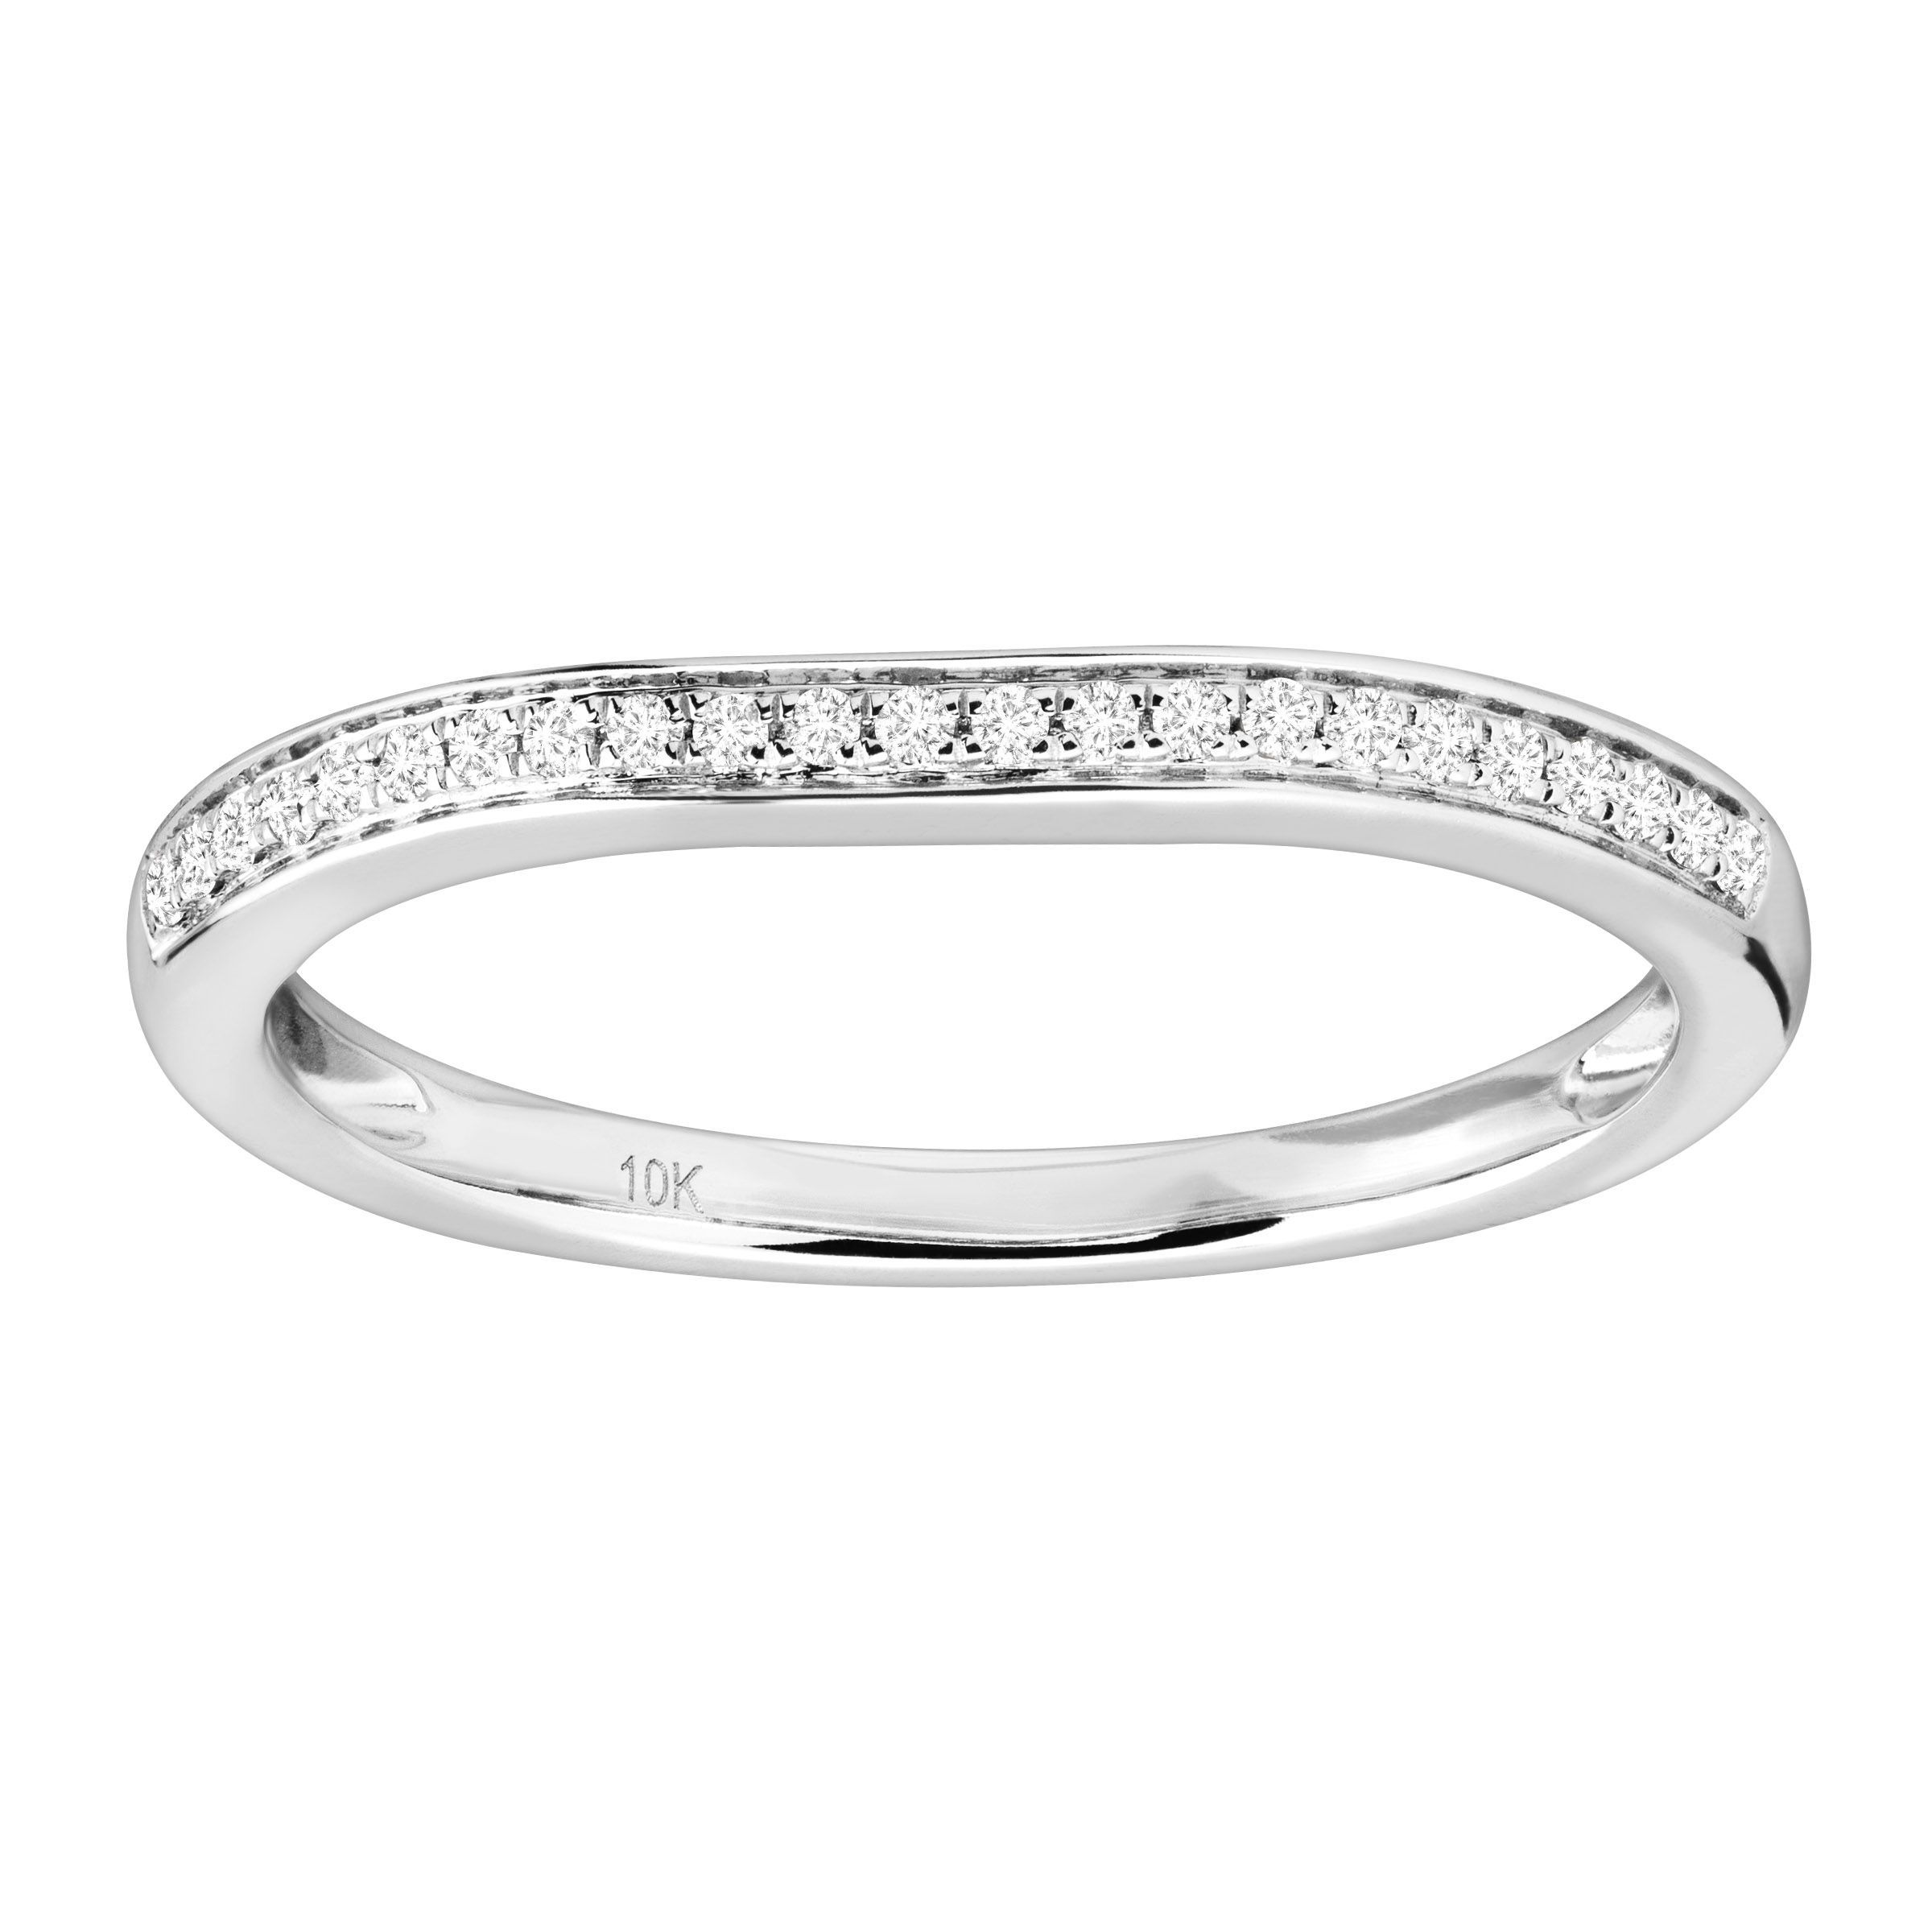 1 10 ct diamond wedding band ring in rhodium plated 10k. Black Bedroom Furniture Sets. Home Design Ideas